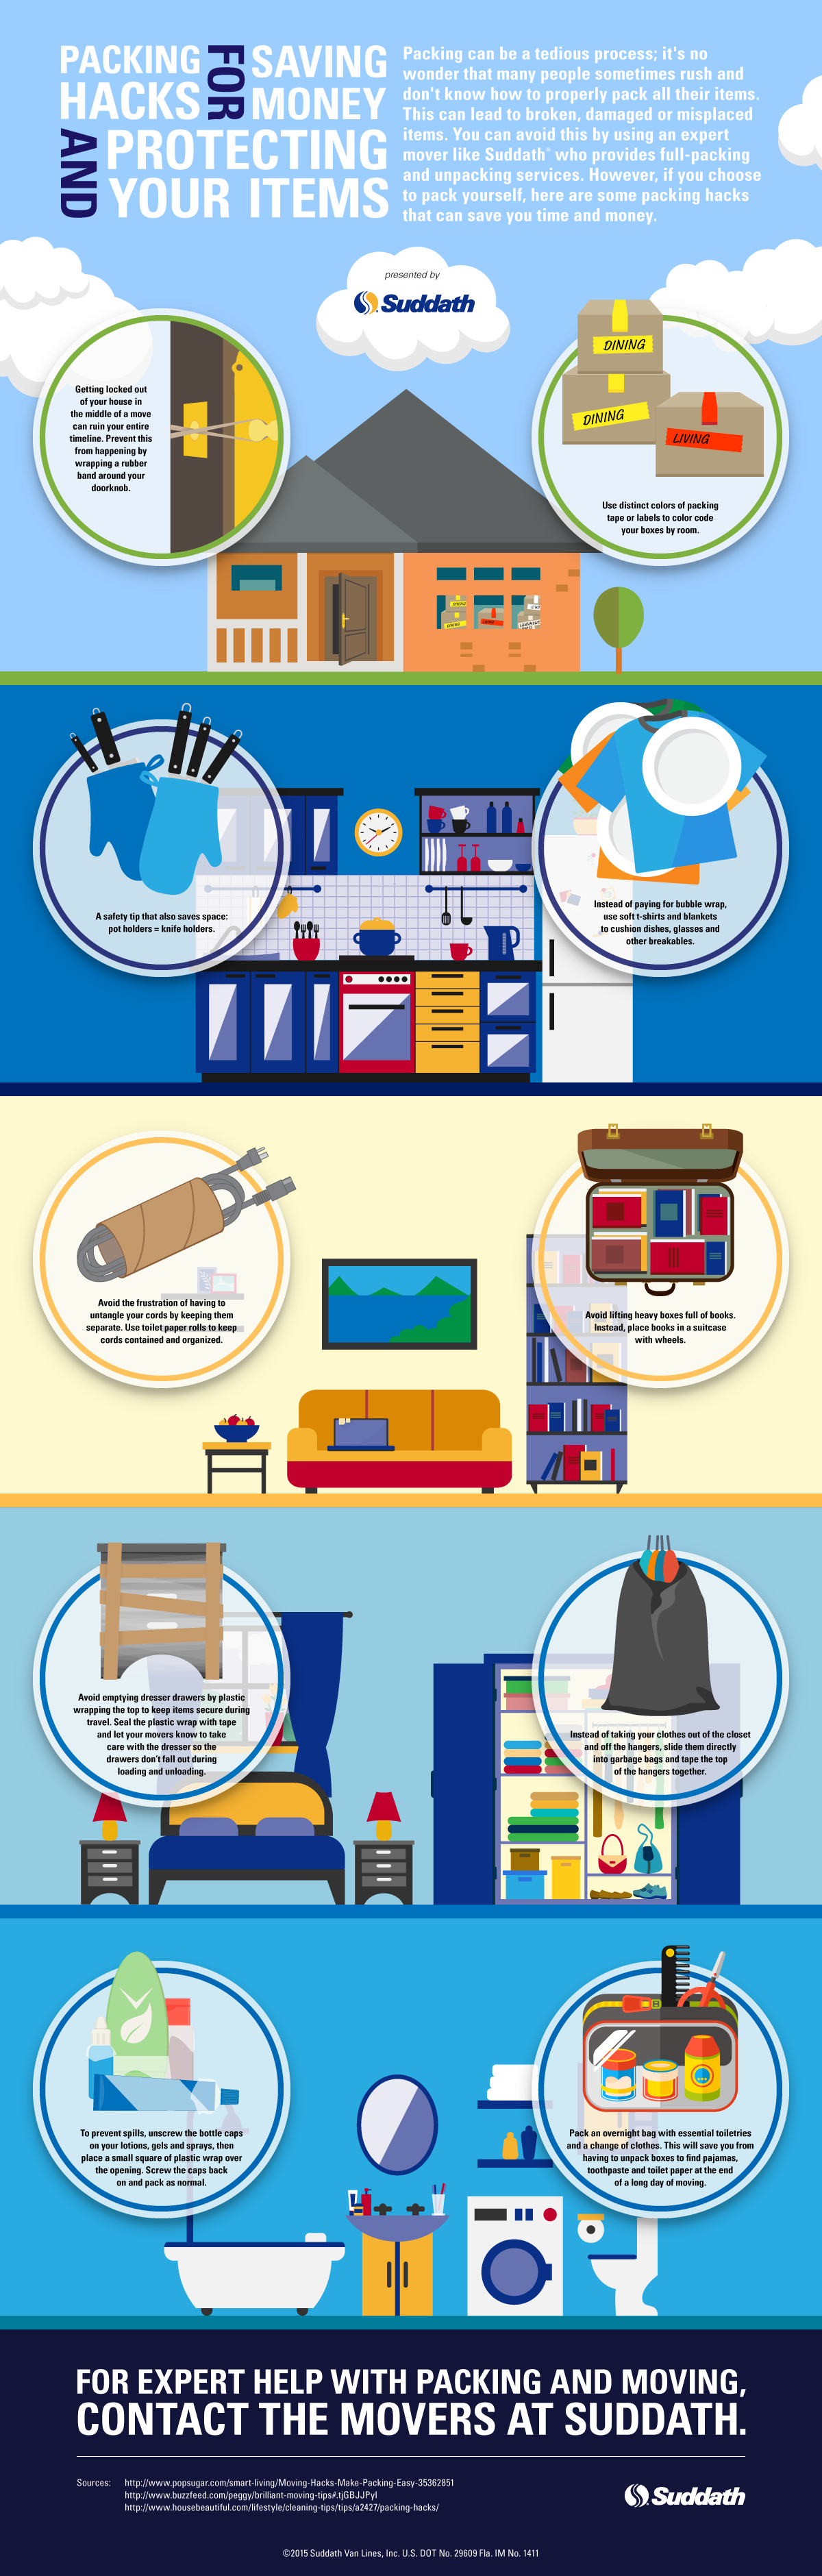 Packing Hacks for Saving Money and Protecting Your Items